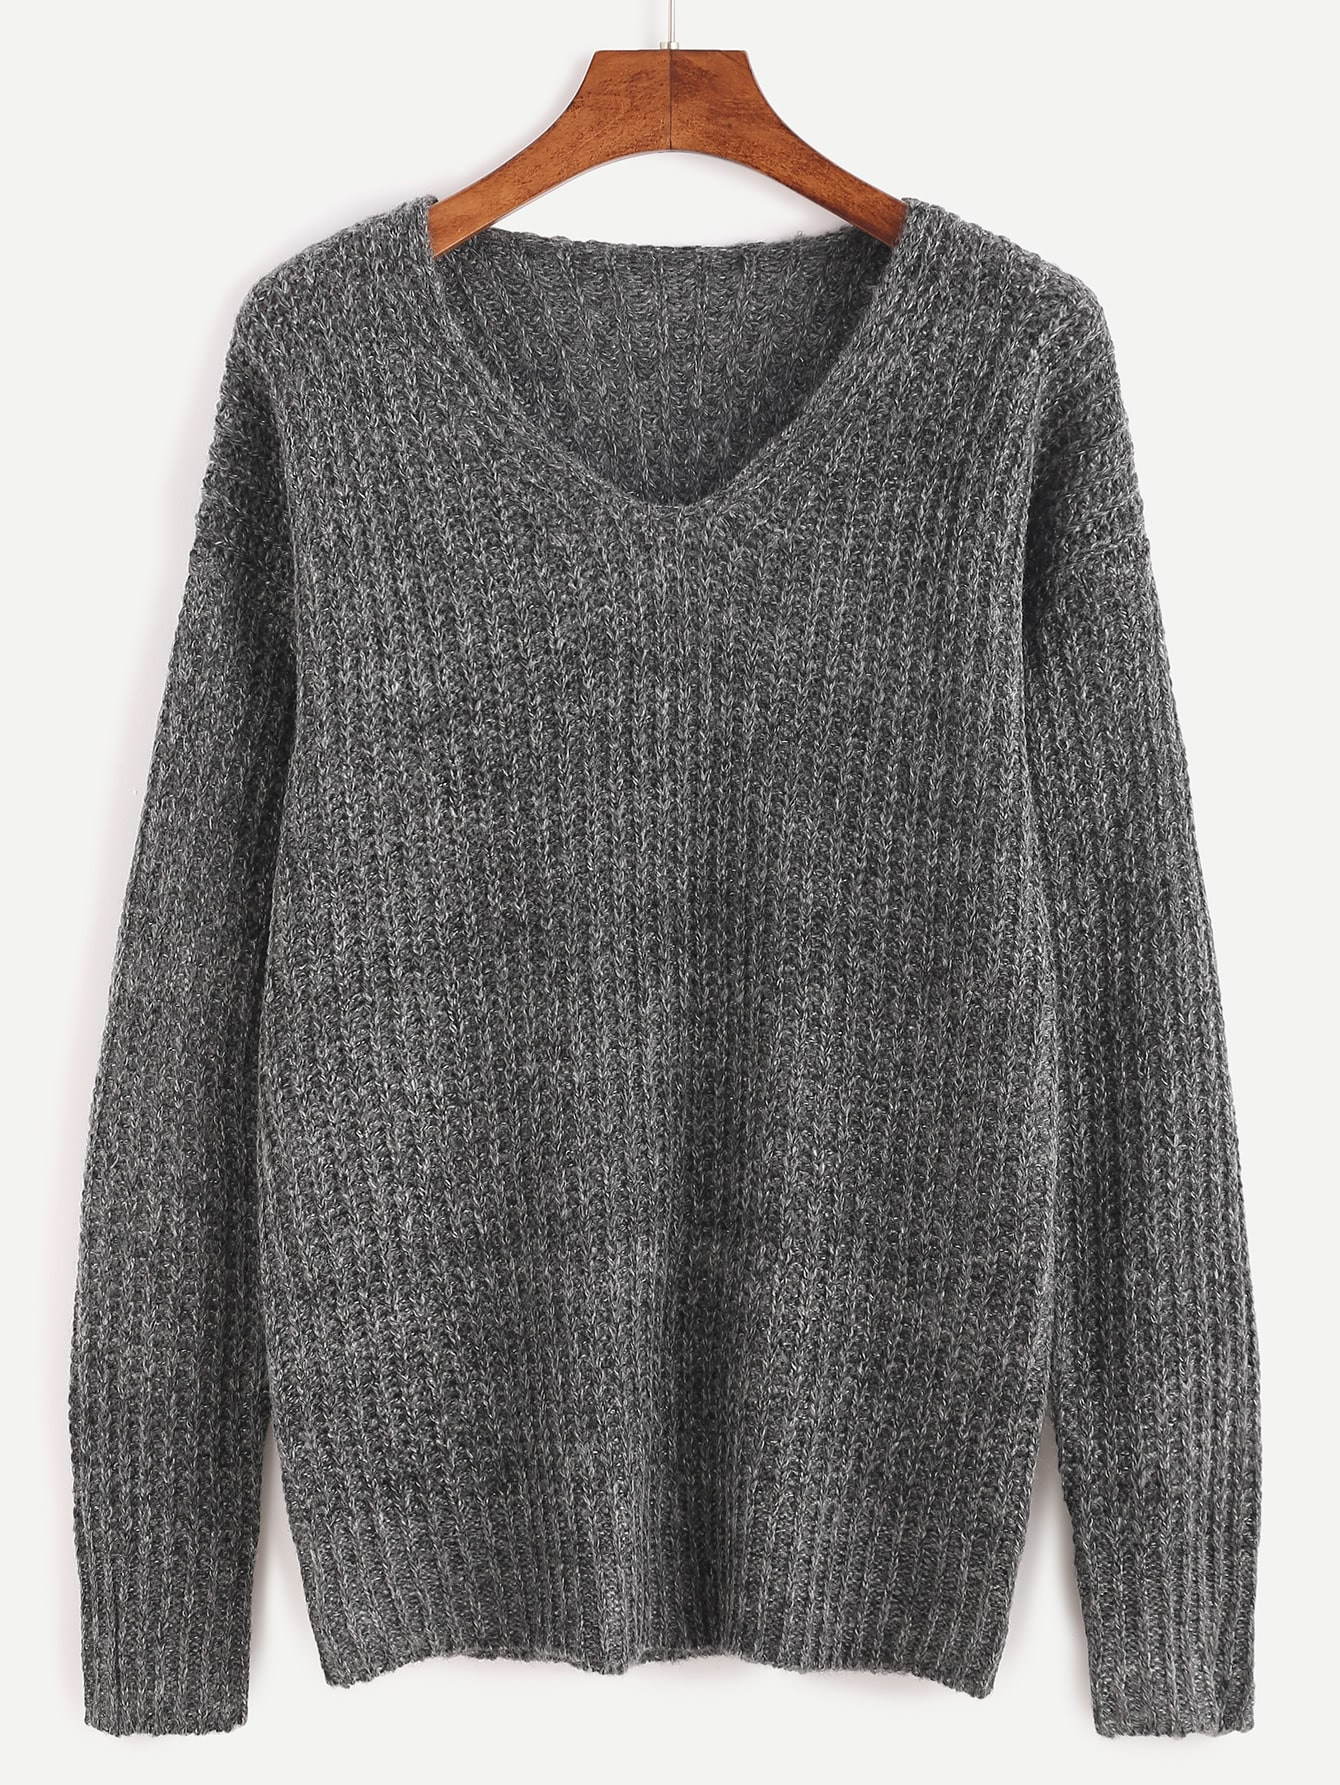 Ribbed Knit Drop Shoulder Sweater sweater160920456